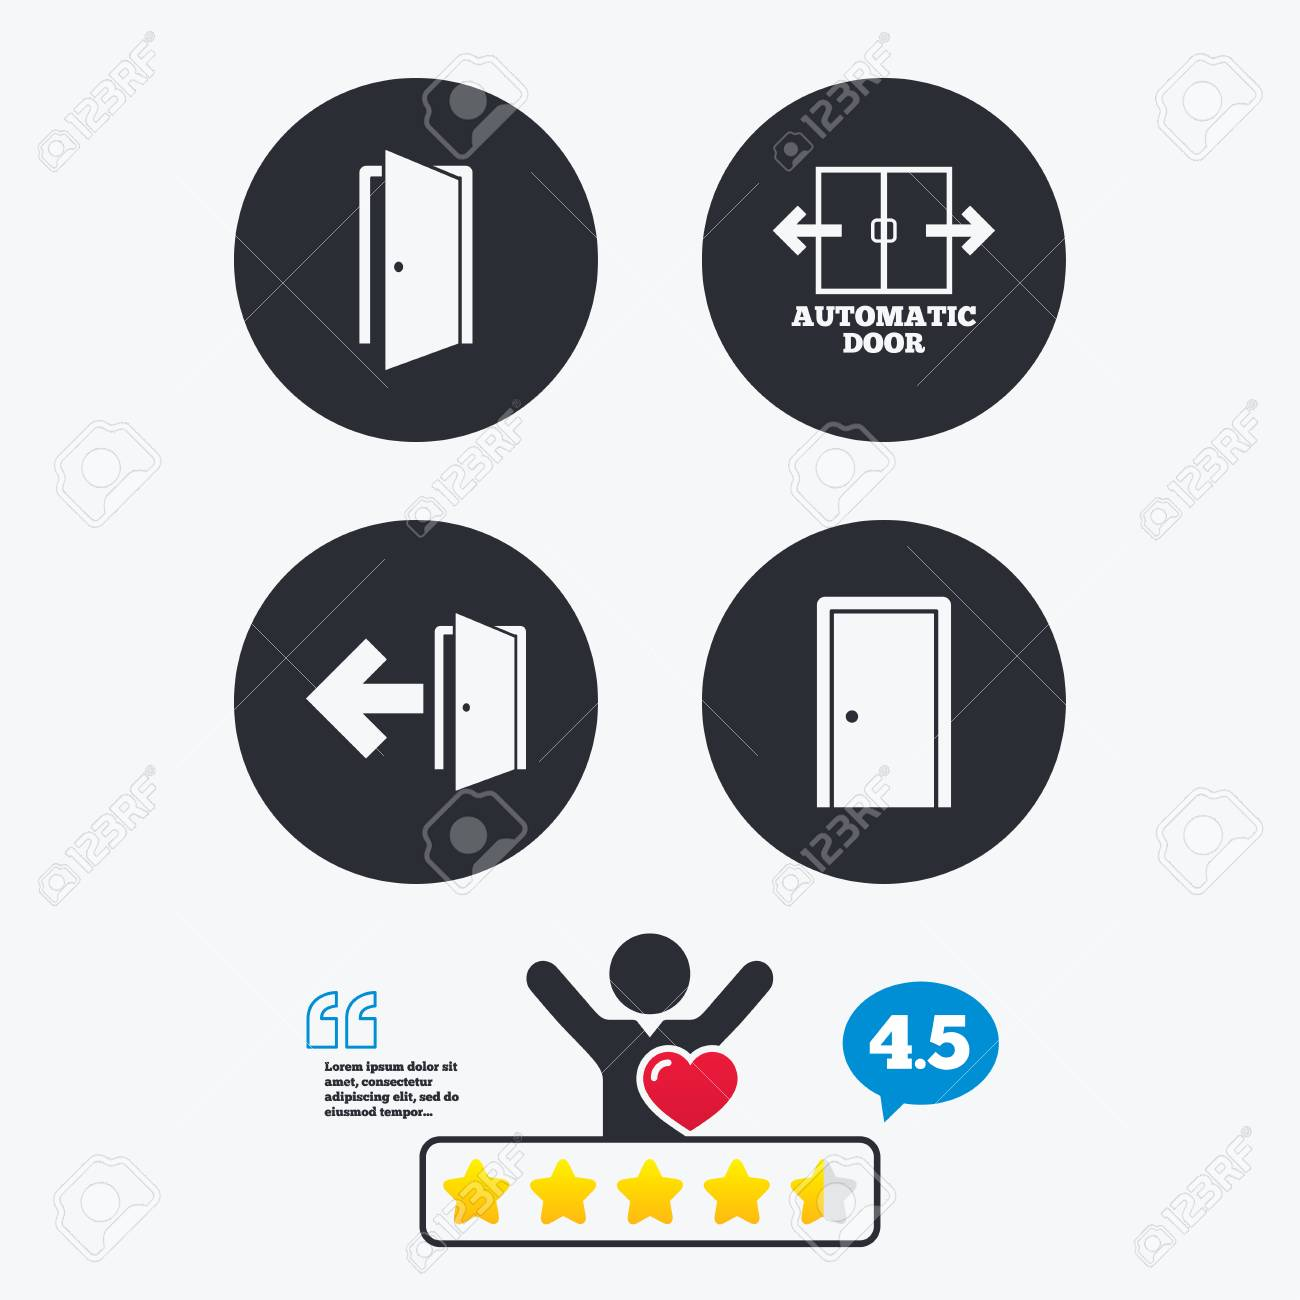 Automatic door icon emergency exit with arrow symbols fire exit emergency exit with arrow symbols fire exit signs star vote buycottarizona Images